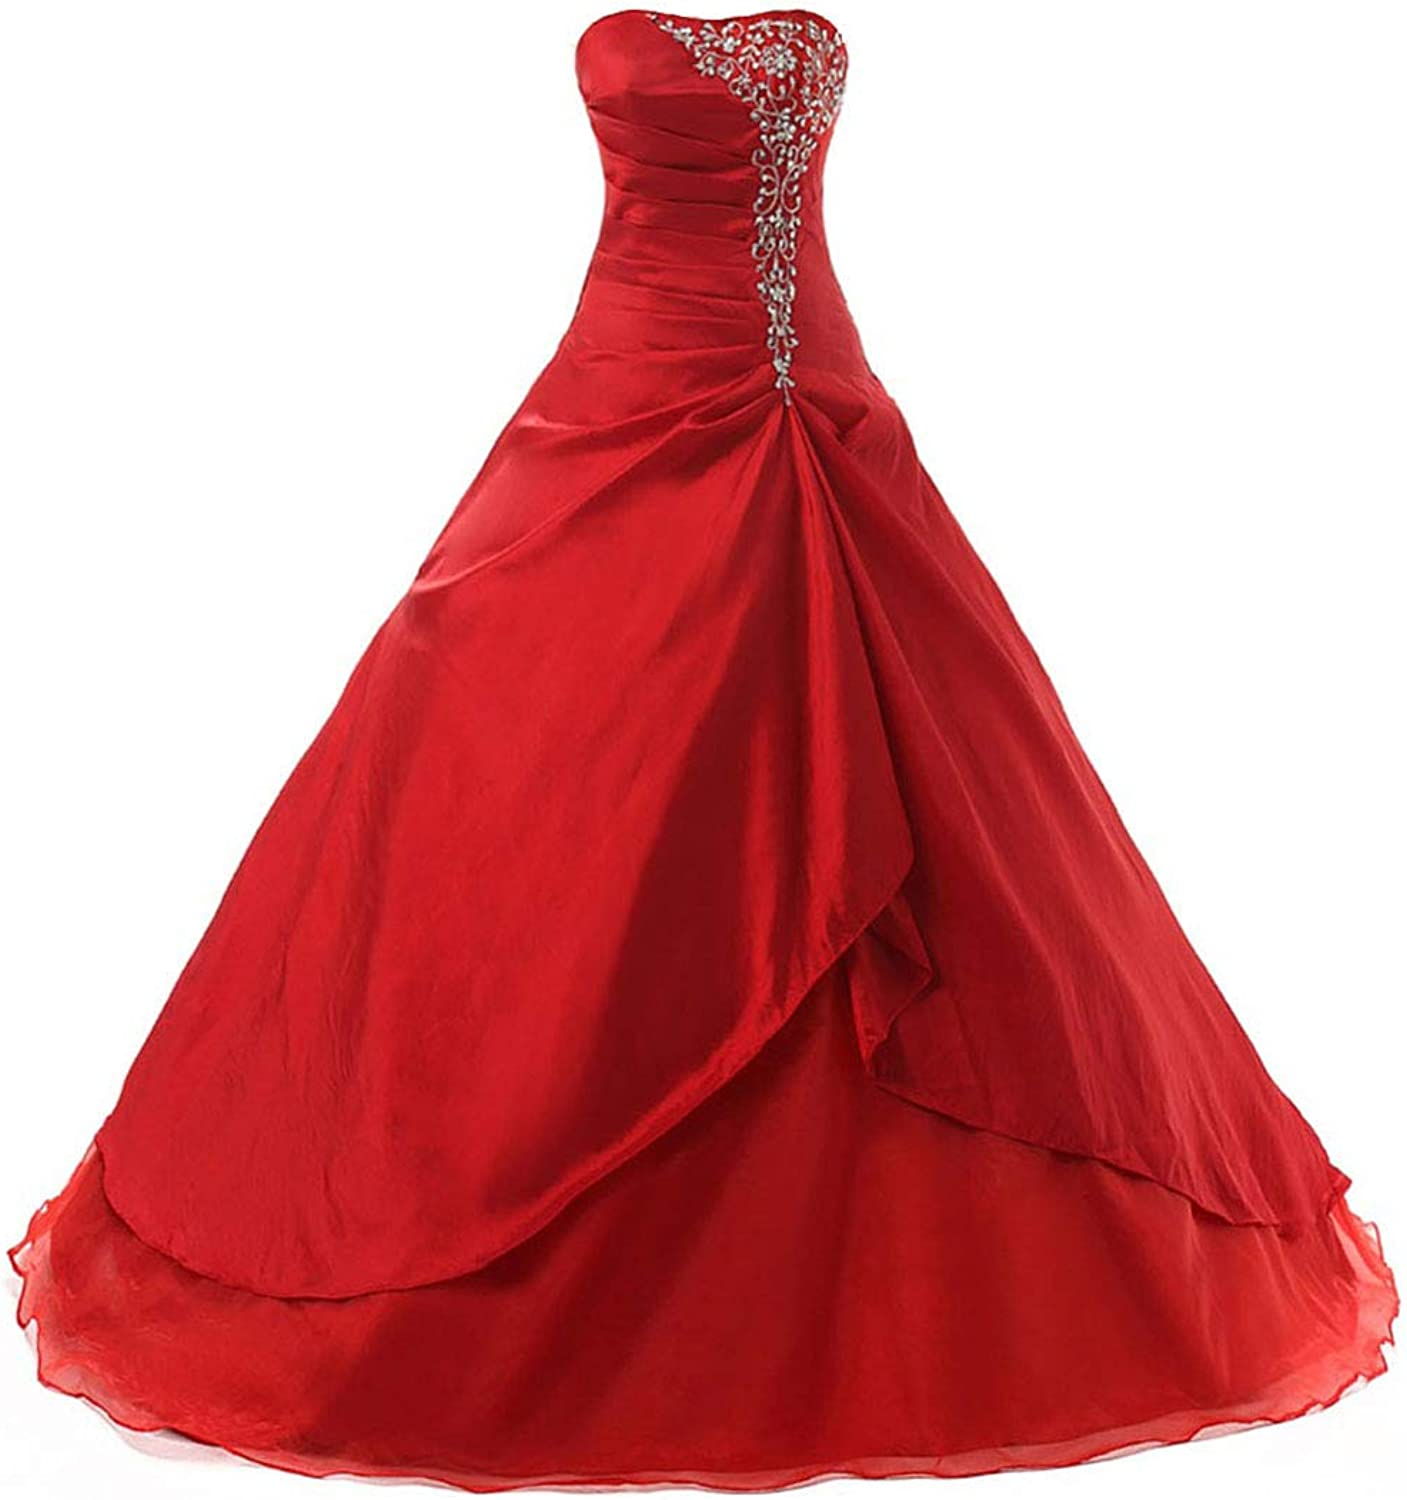 Vantexi Women's Embroidery Taffeta Formal Prom Dress Quinceanera Gowns